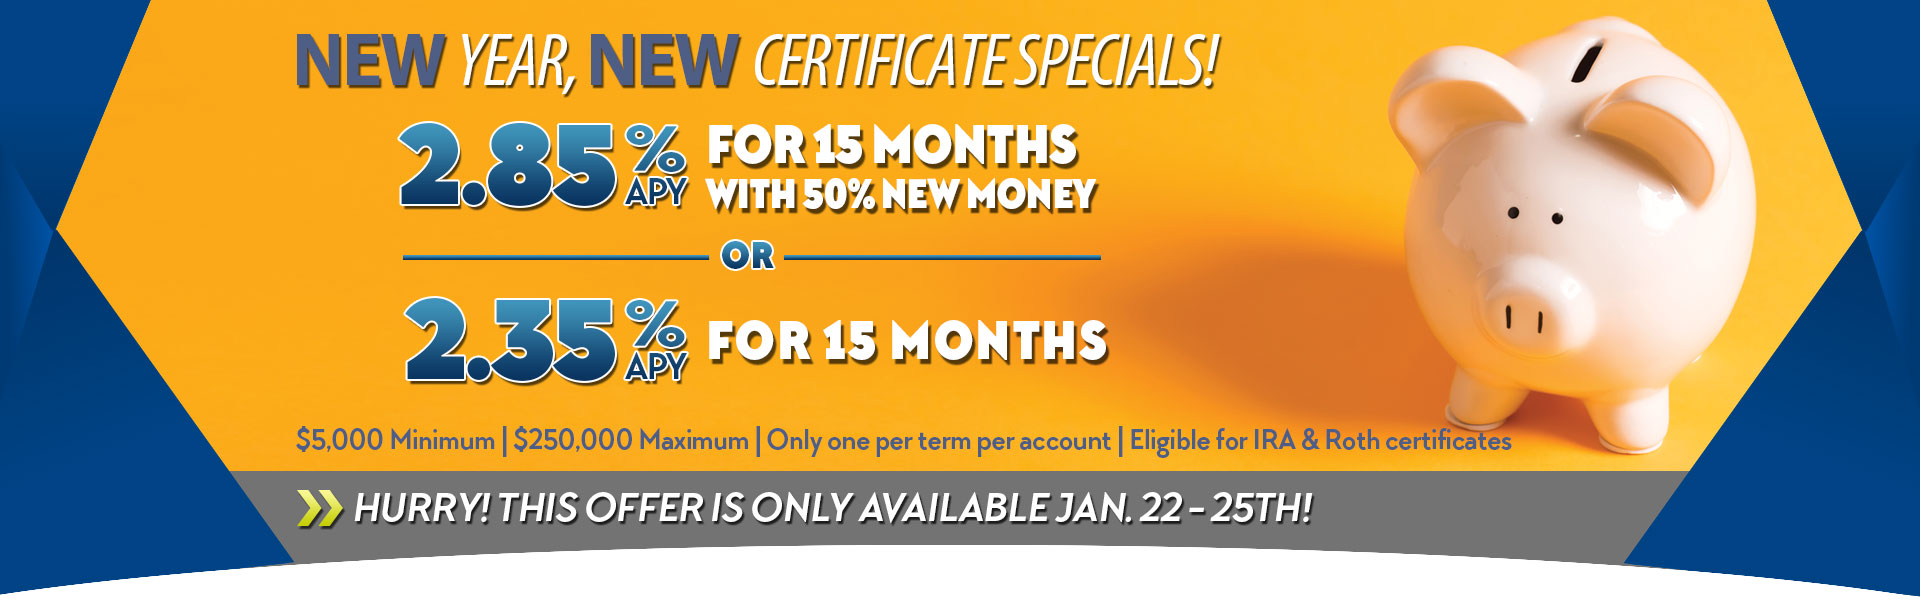 Share certificate specials